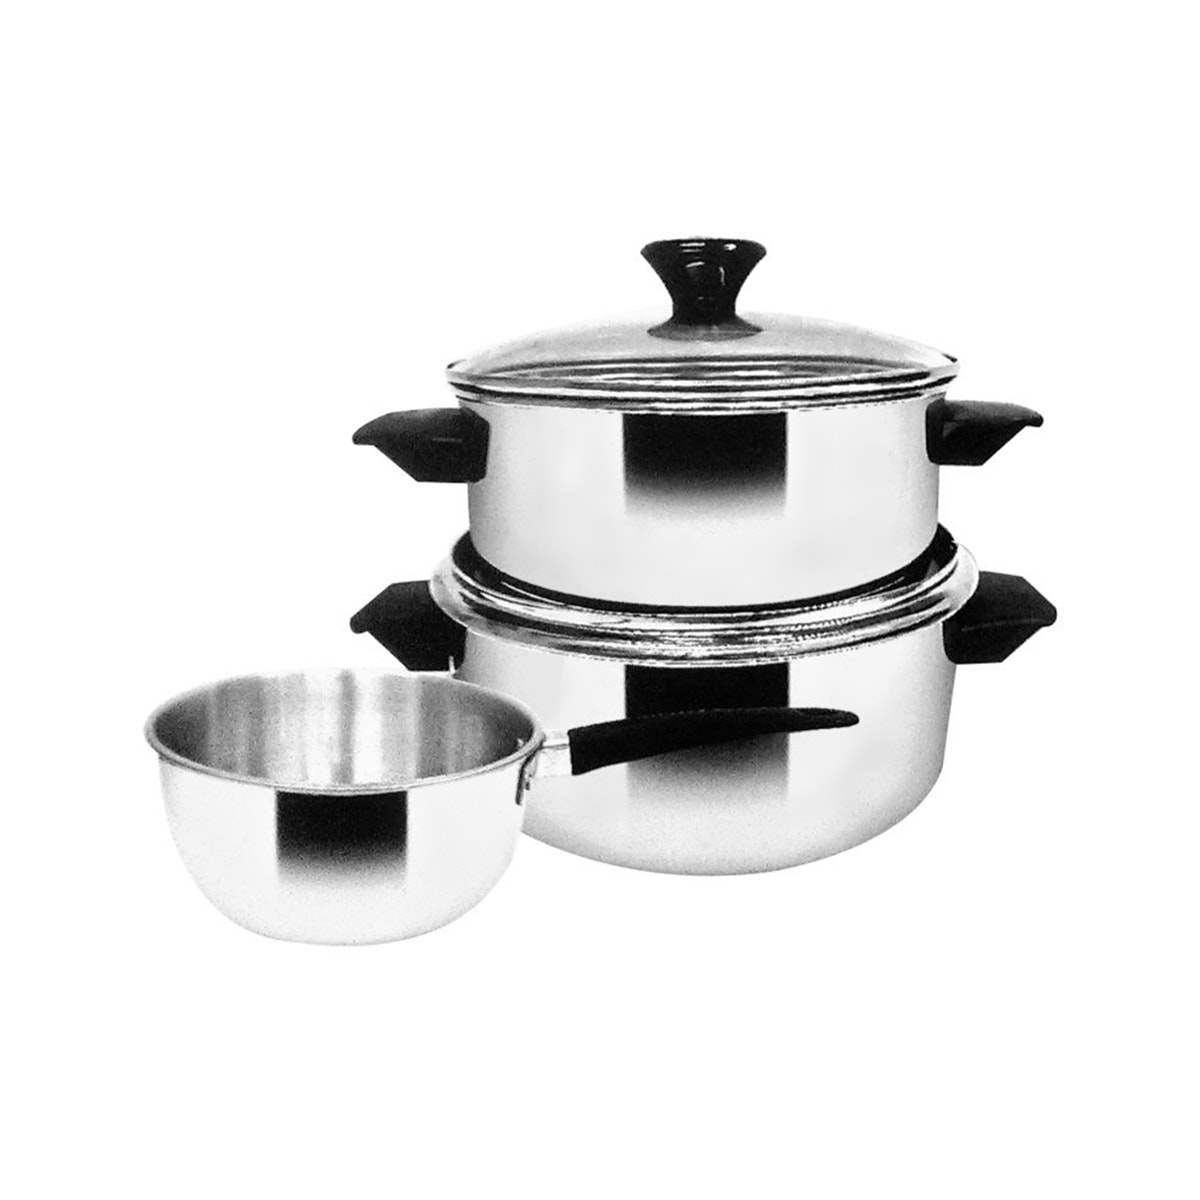 Maspion Panda Lily Set SS-P153 (16cm Saucepan + 18cm & 20cm Dutch Oven with Glass Cover)